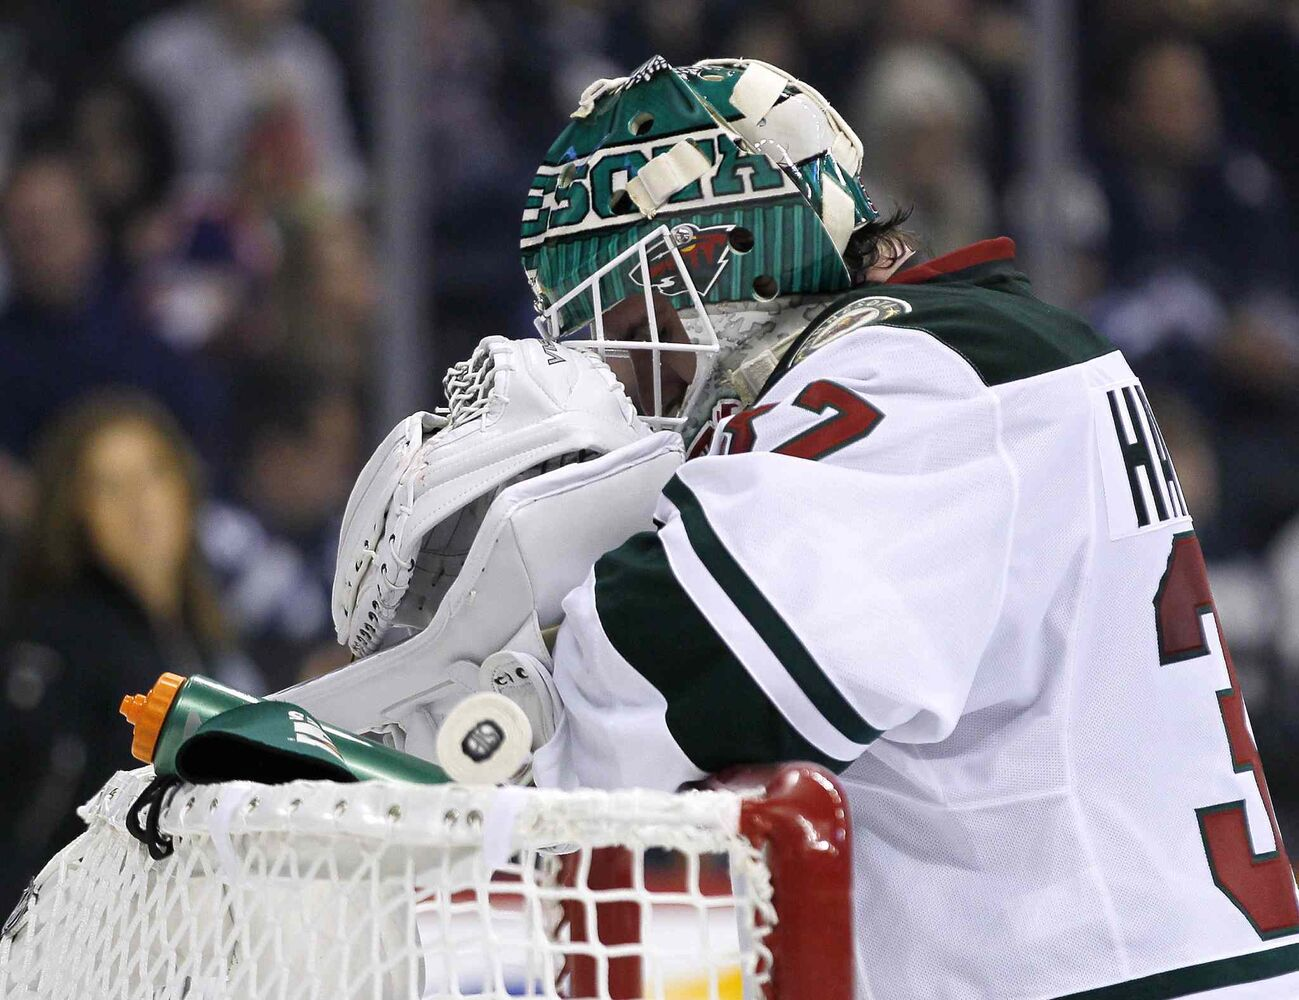 Minnesota Wild goaltender Josh Harding takes a breather during the second period. (John Woods / The Canadian Press)